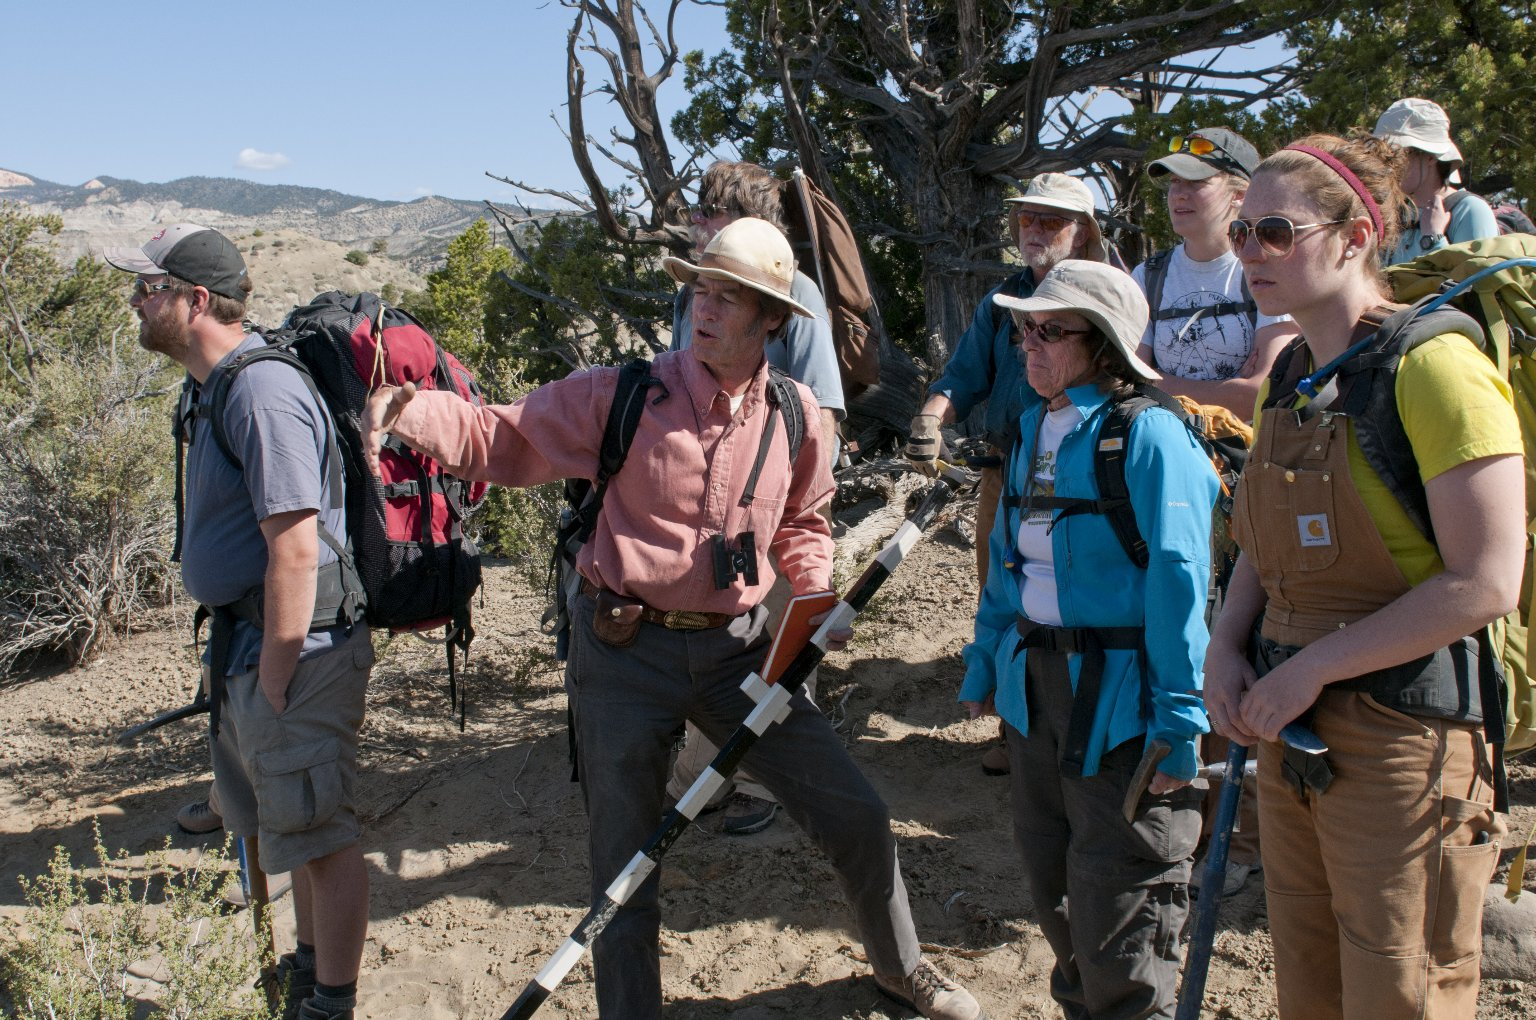 Dr. Bob Raynolds, DMNS Research Associate, points out features of the terrain to the group.